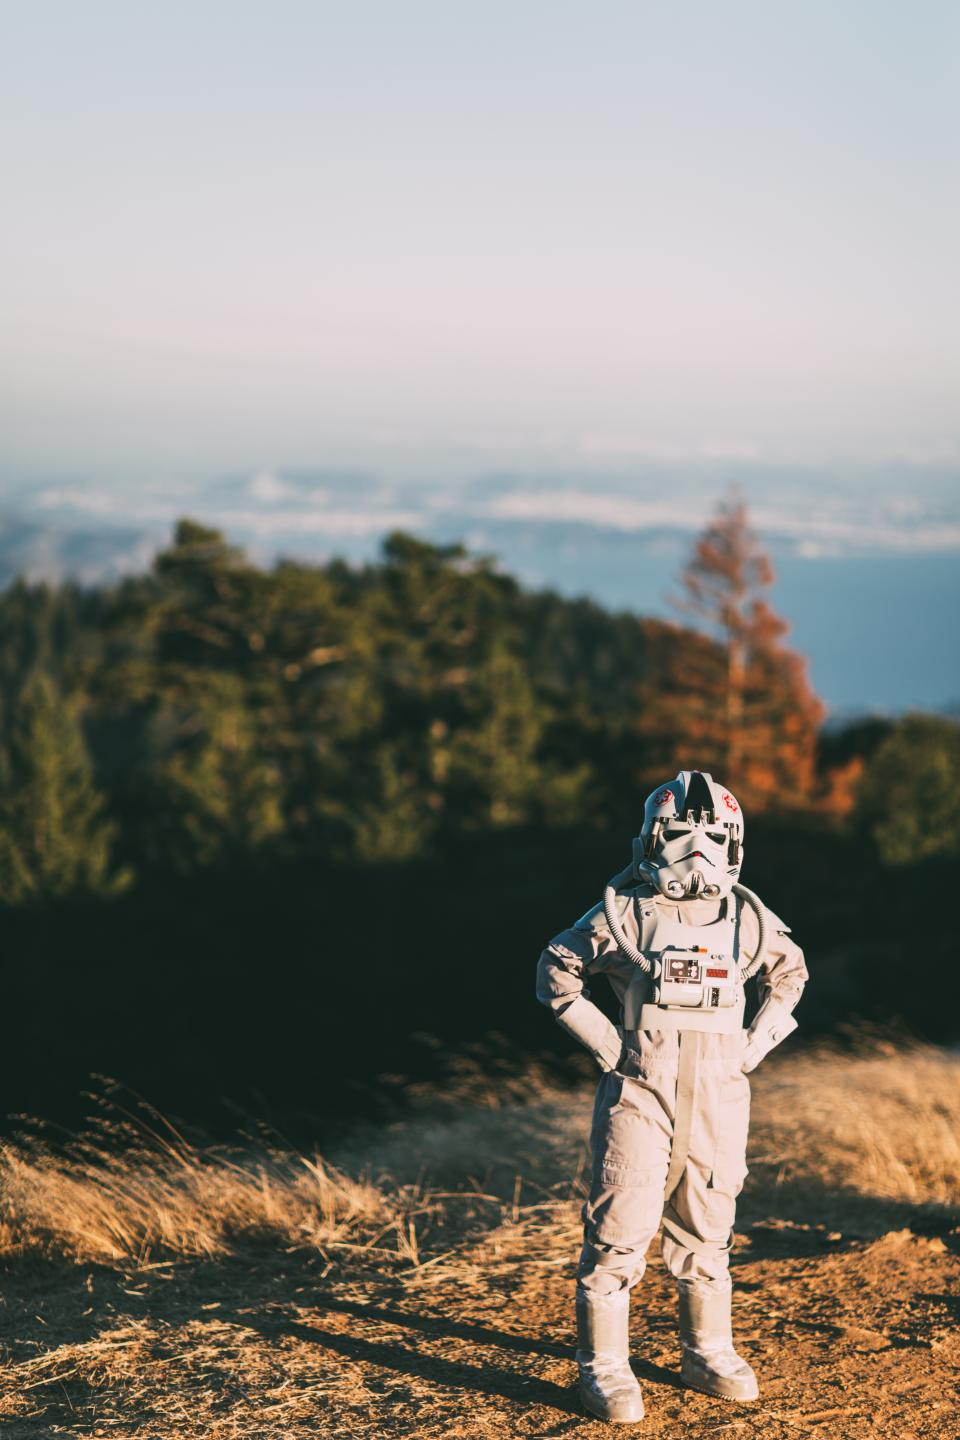 people man alone costume astronaut science sunny day travel grass highland blur sky clouds